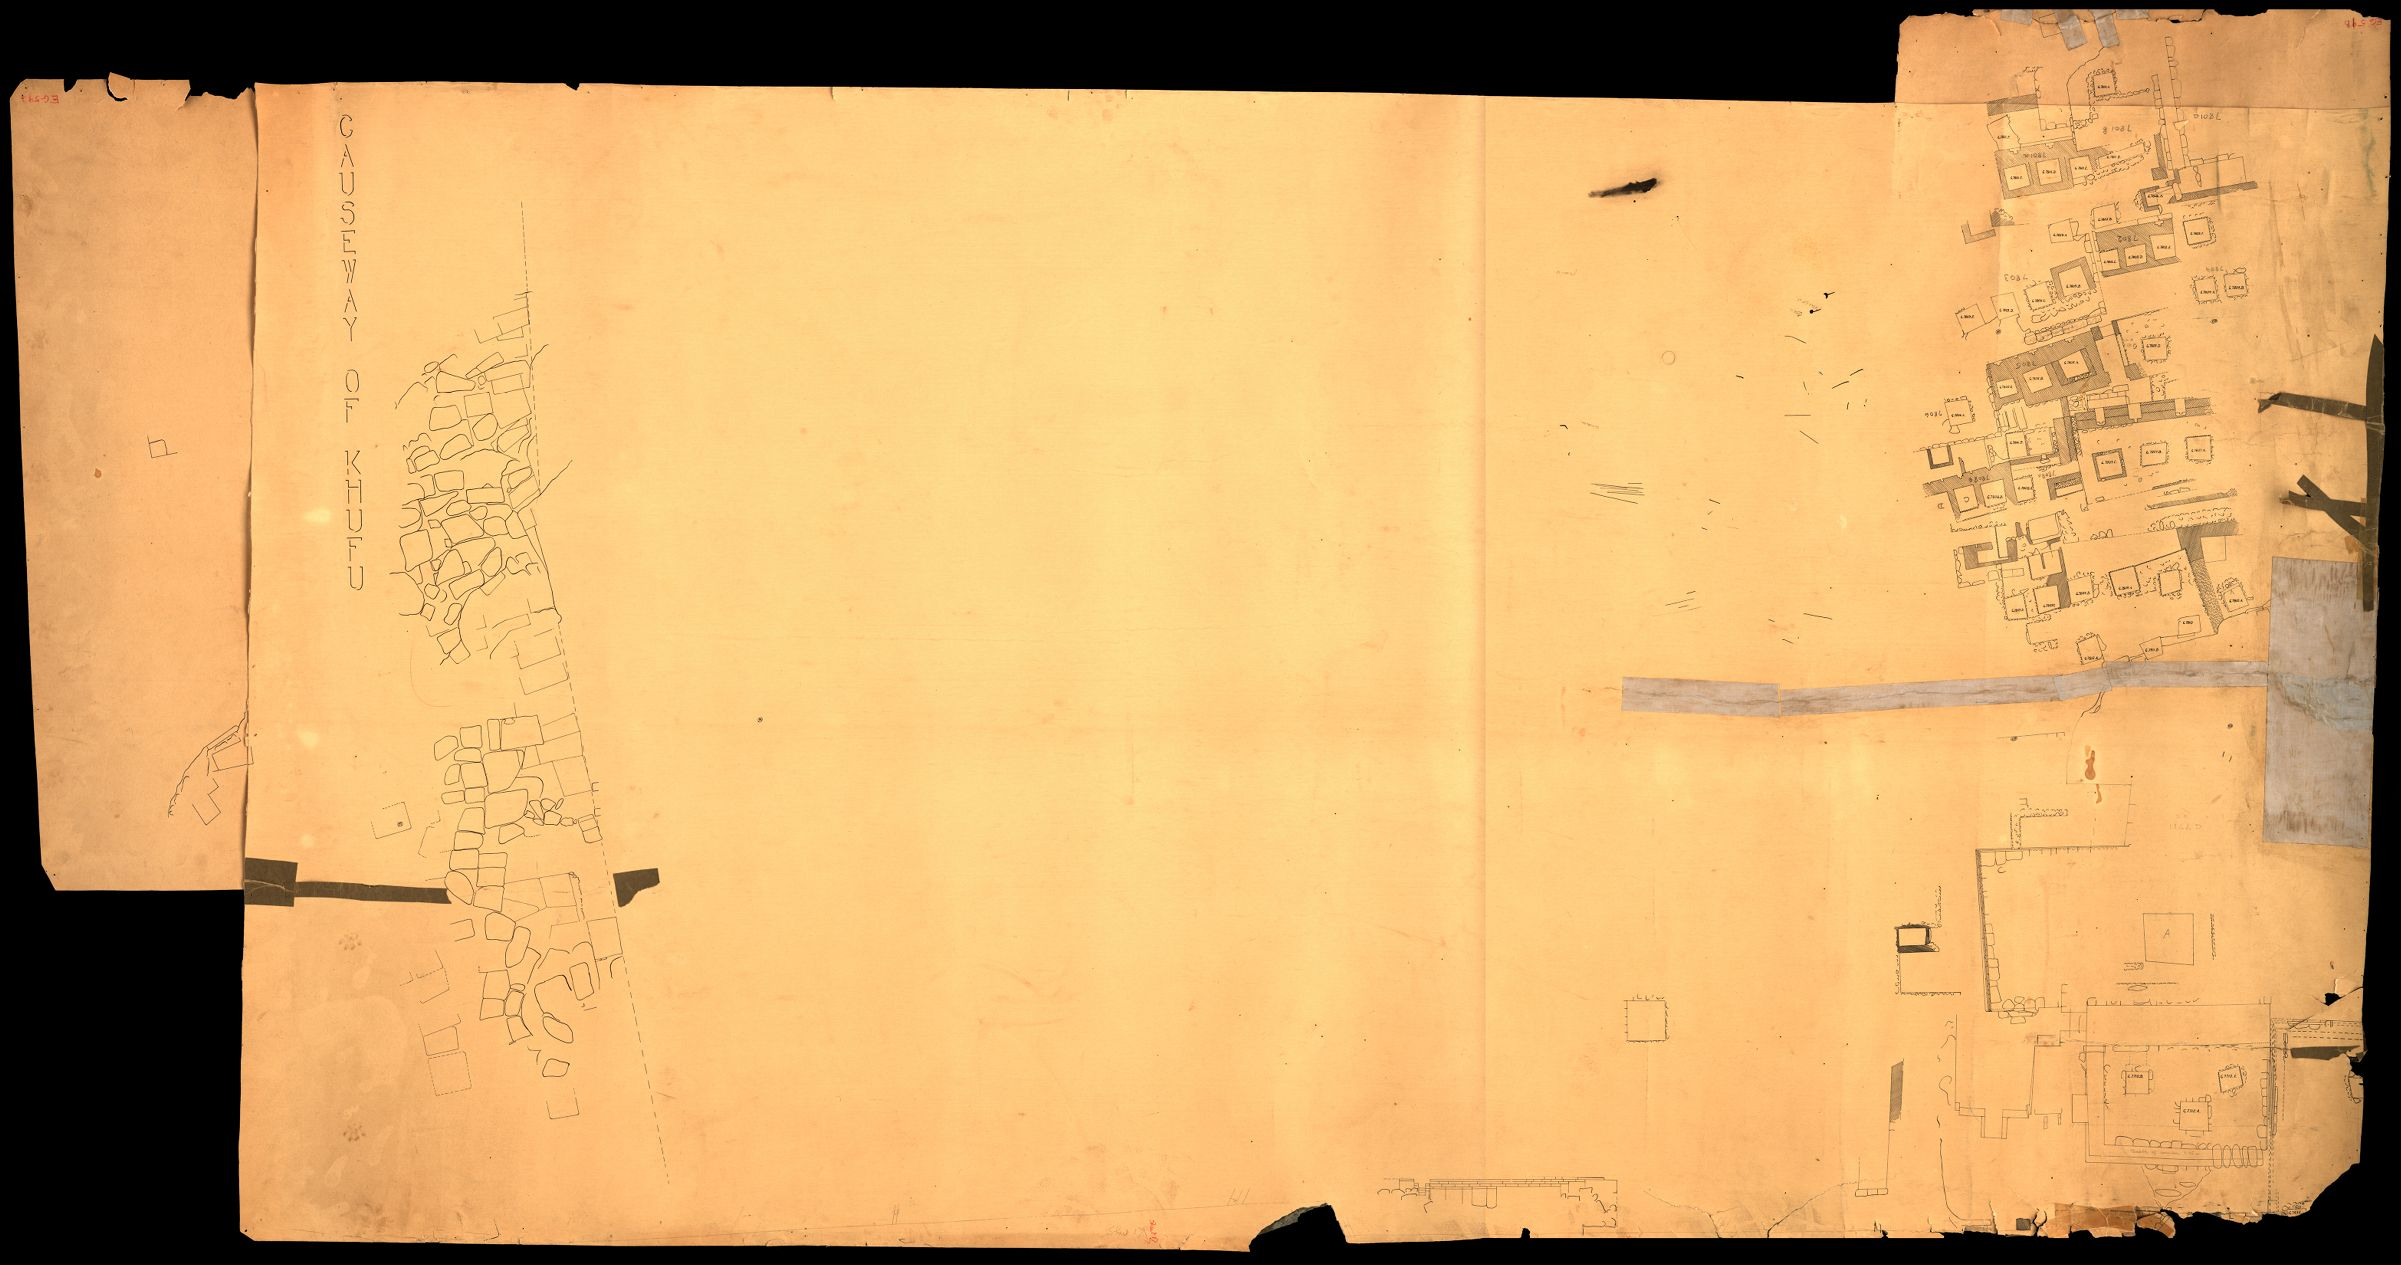 Maps and plans: Plan of cemetery G 7000: G 7800s and G 7900s, Khufu causeway